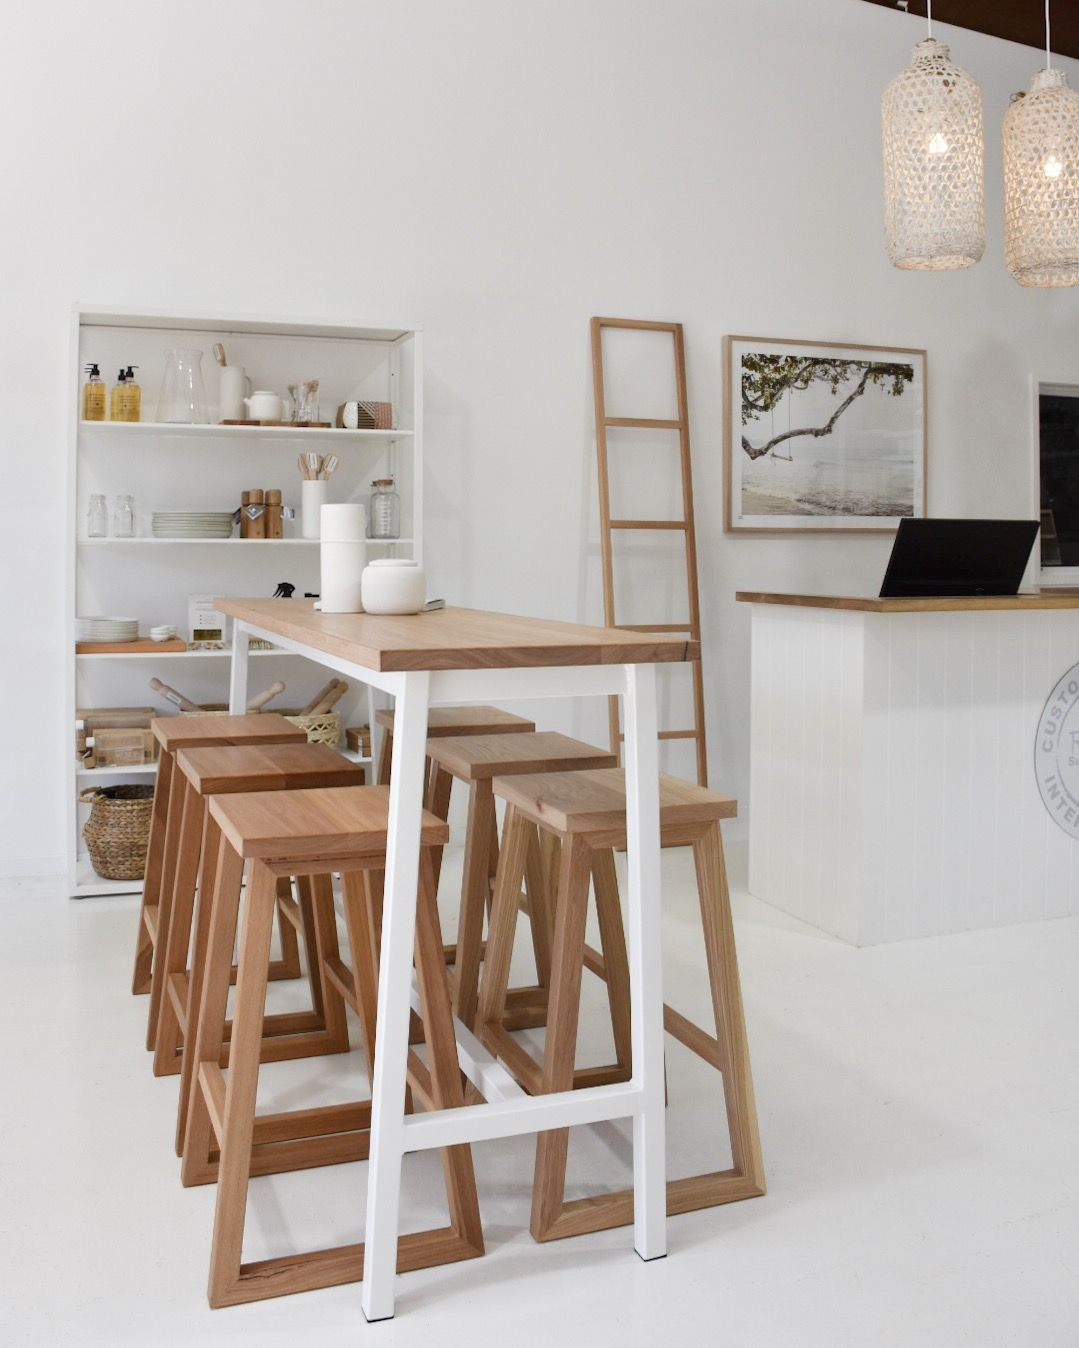 Our sunny bar table ideal for queensland living pictured